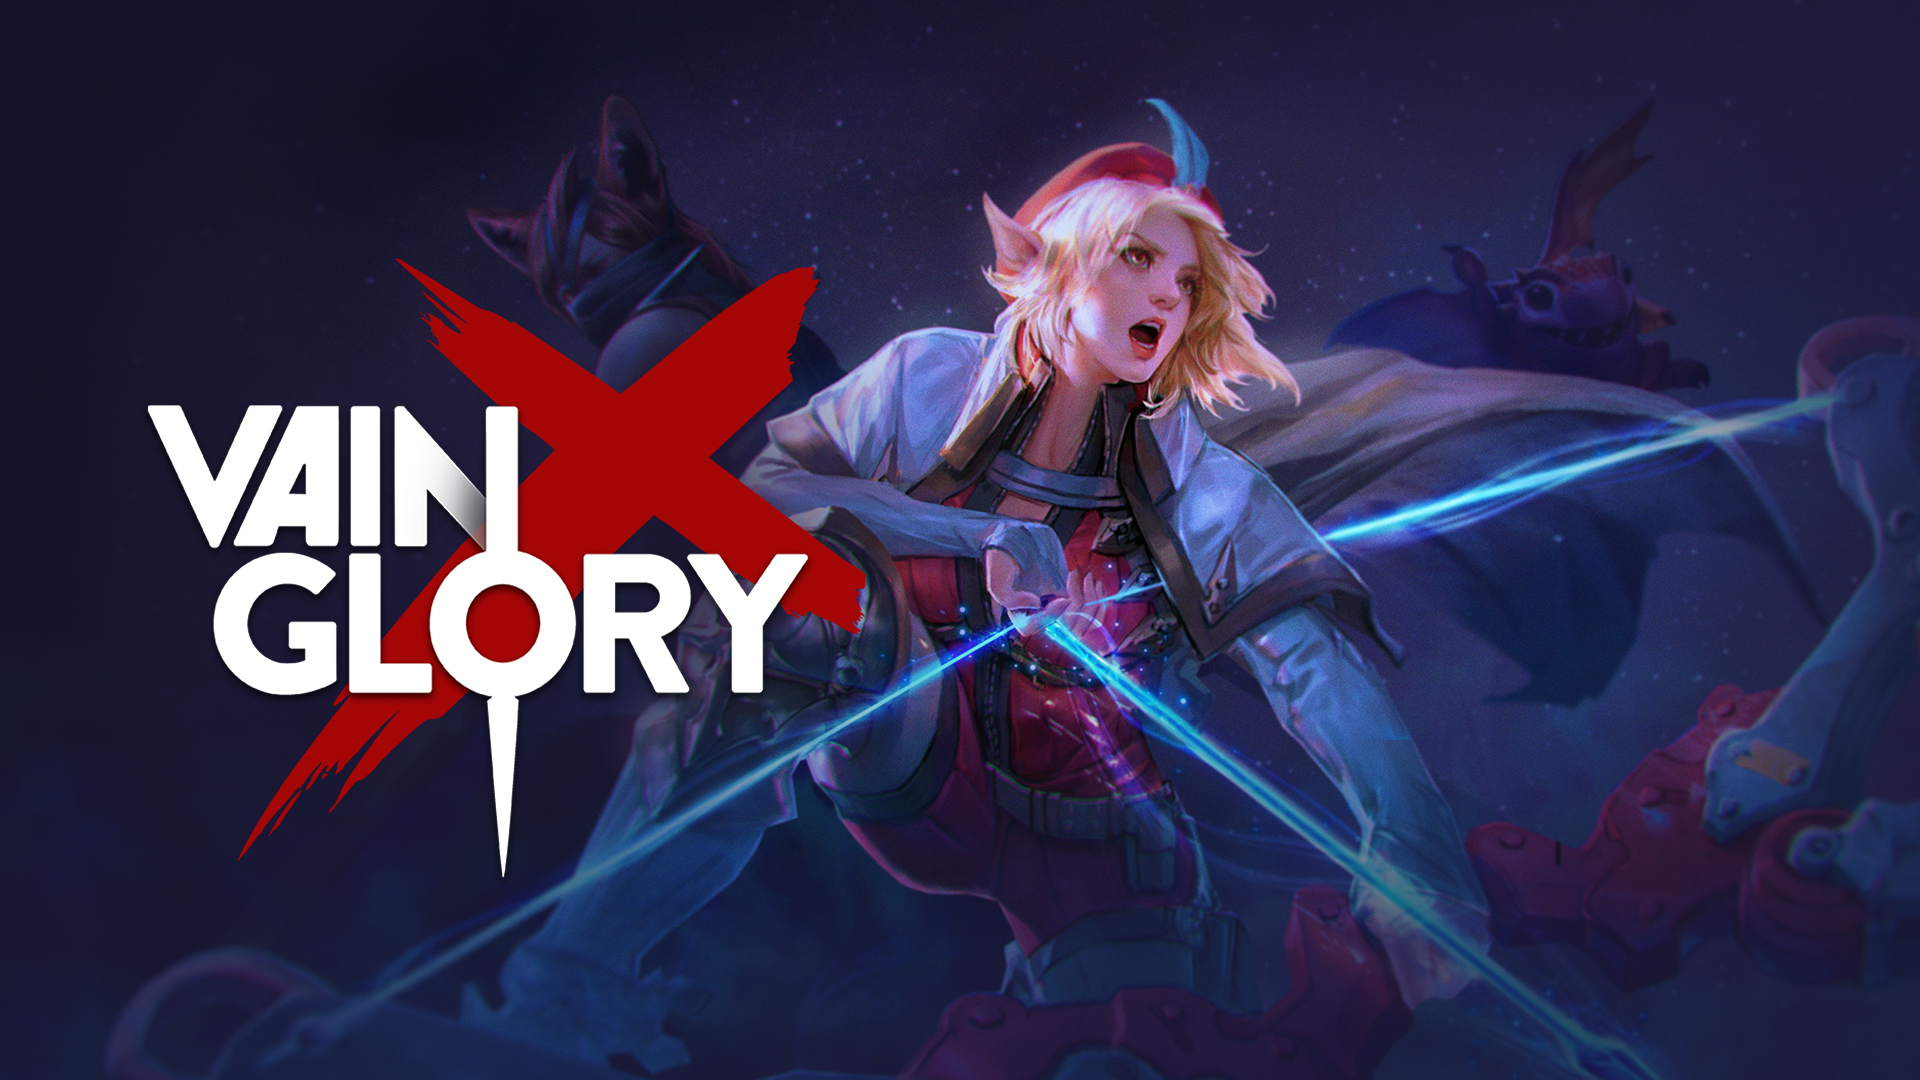 Download Vainglory Apk Mod Premium Game For Free and Play it From Any Device!